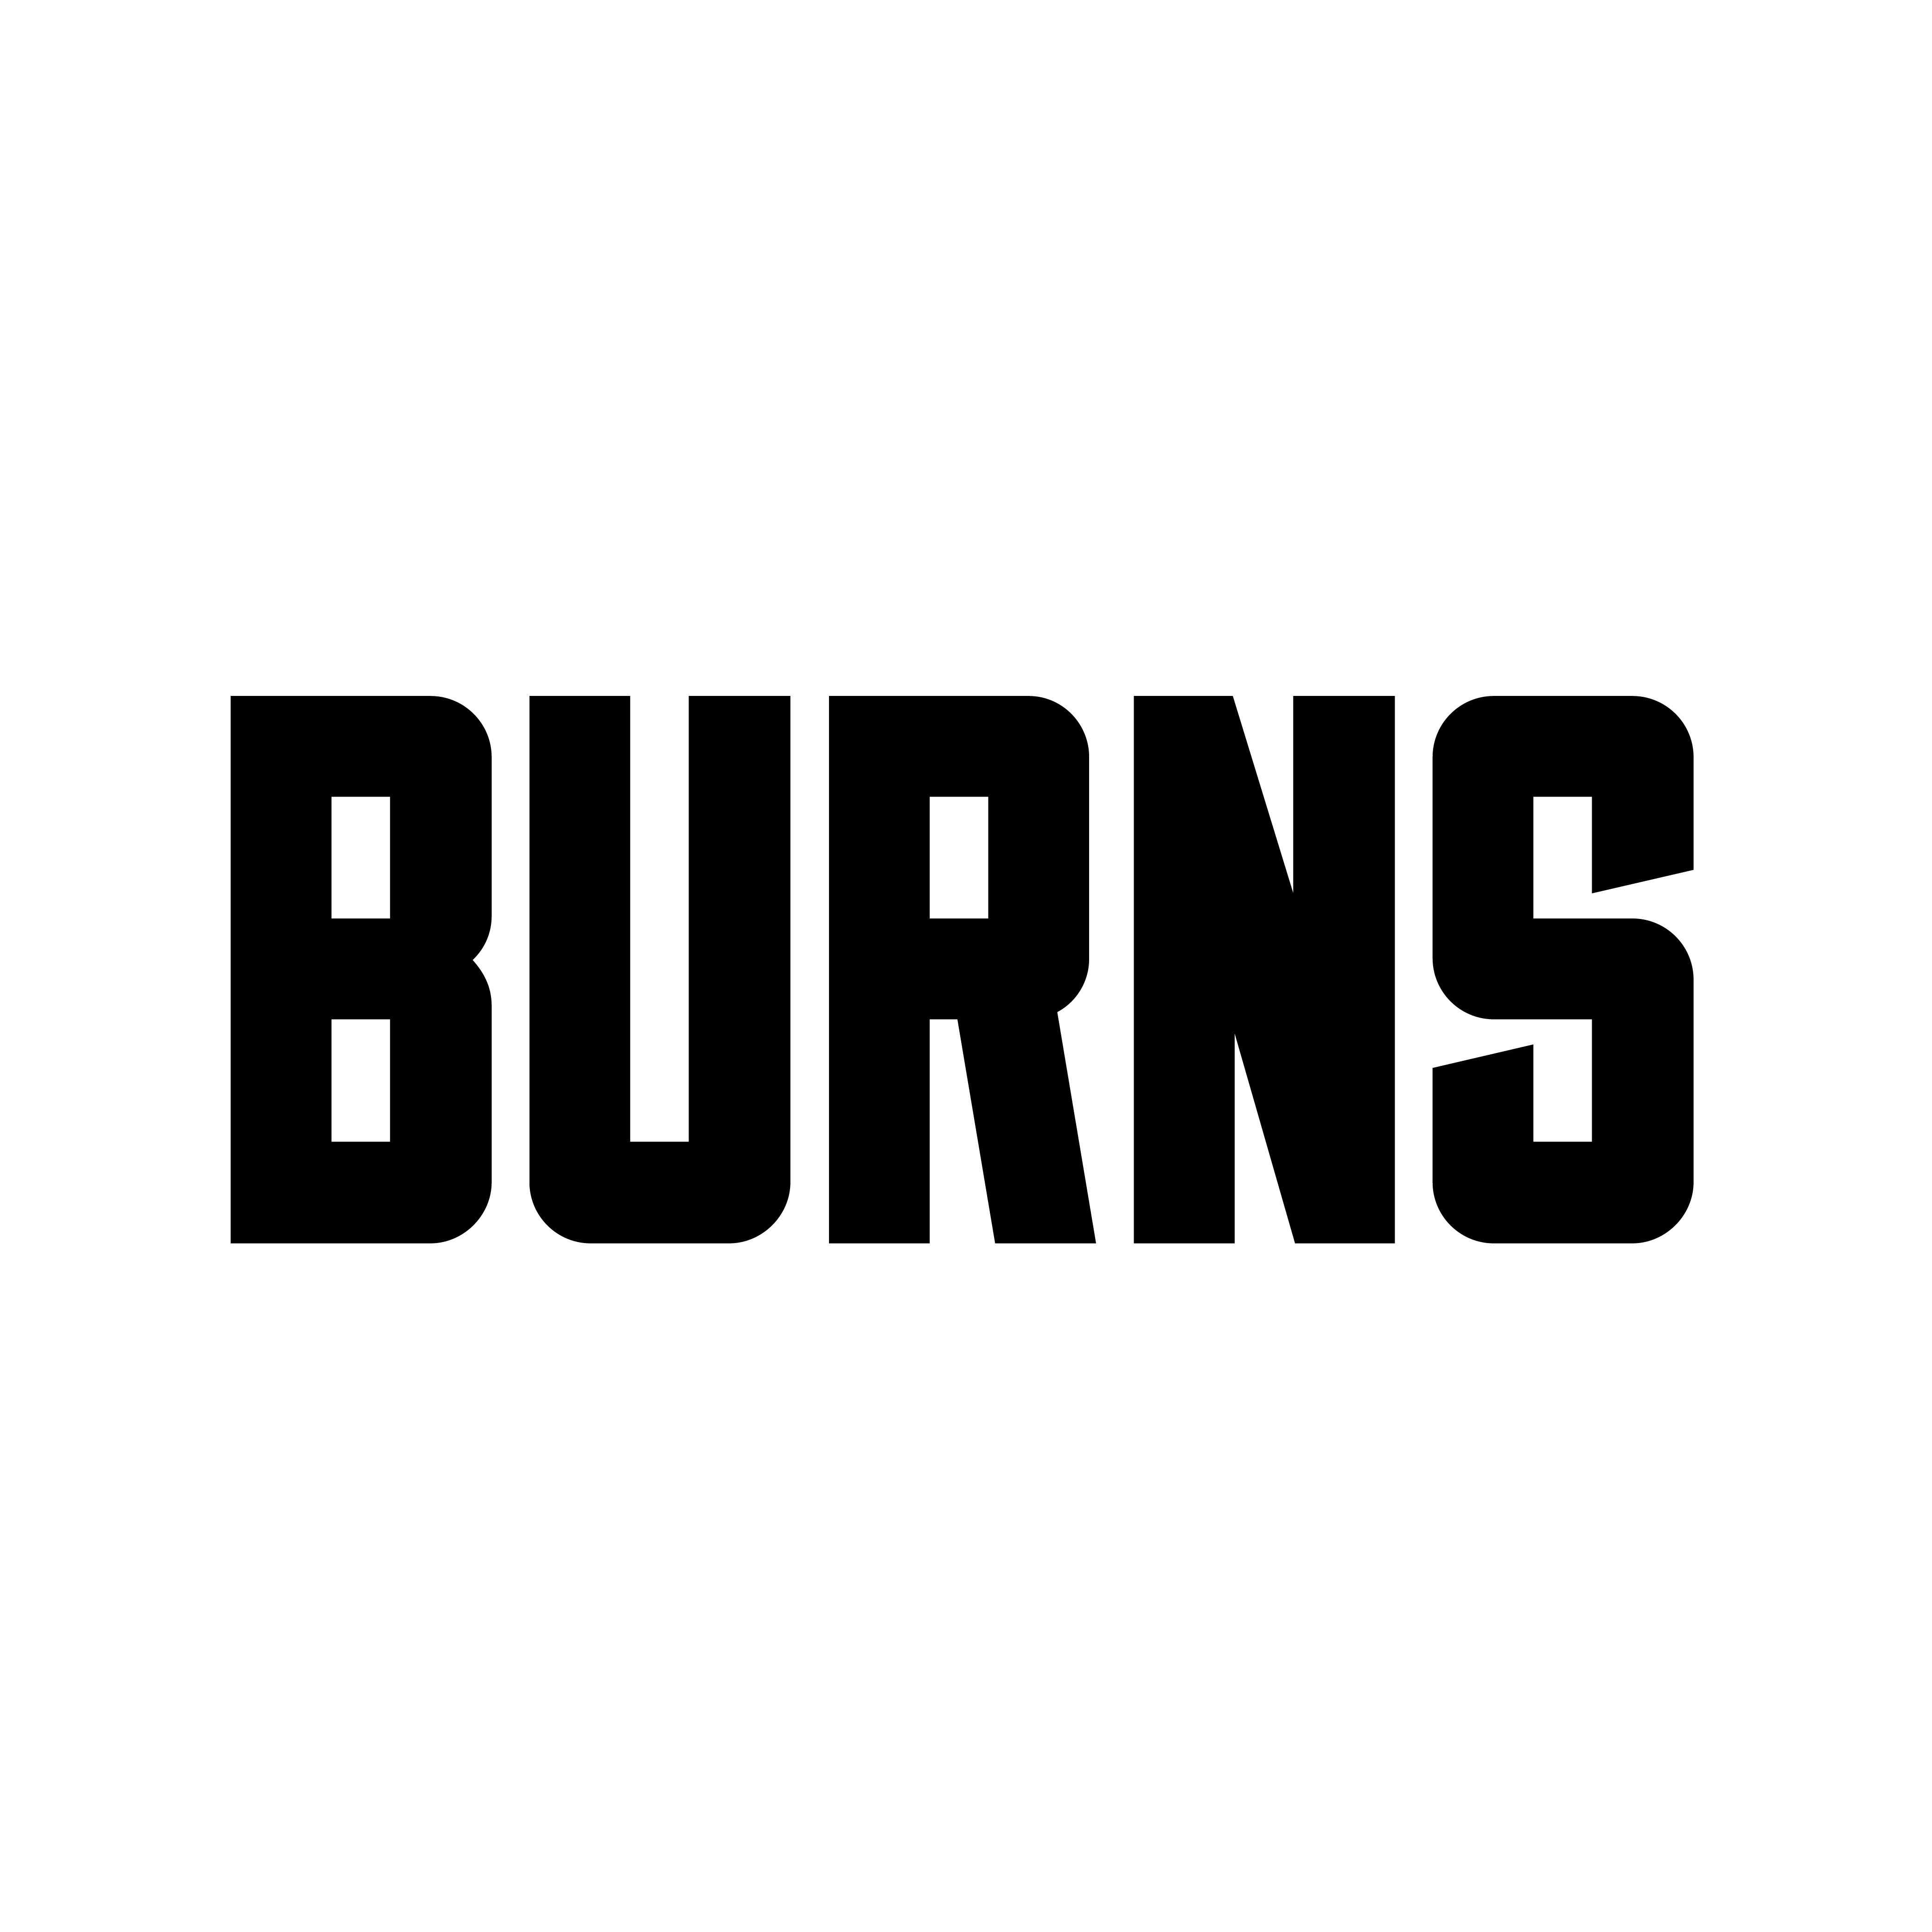 Customers Trust Burns